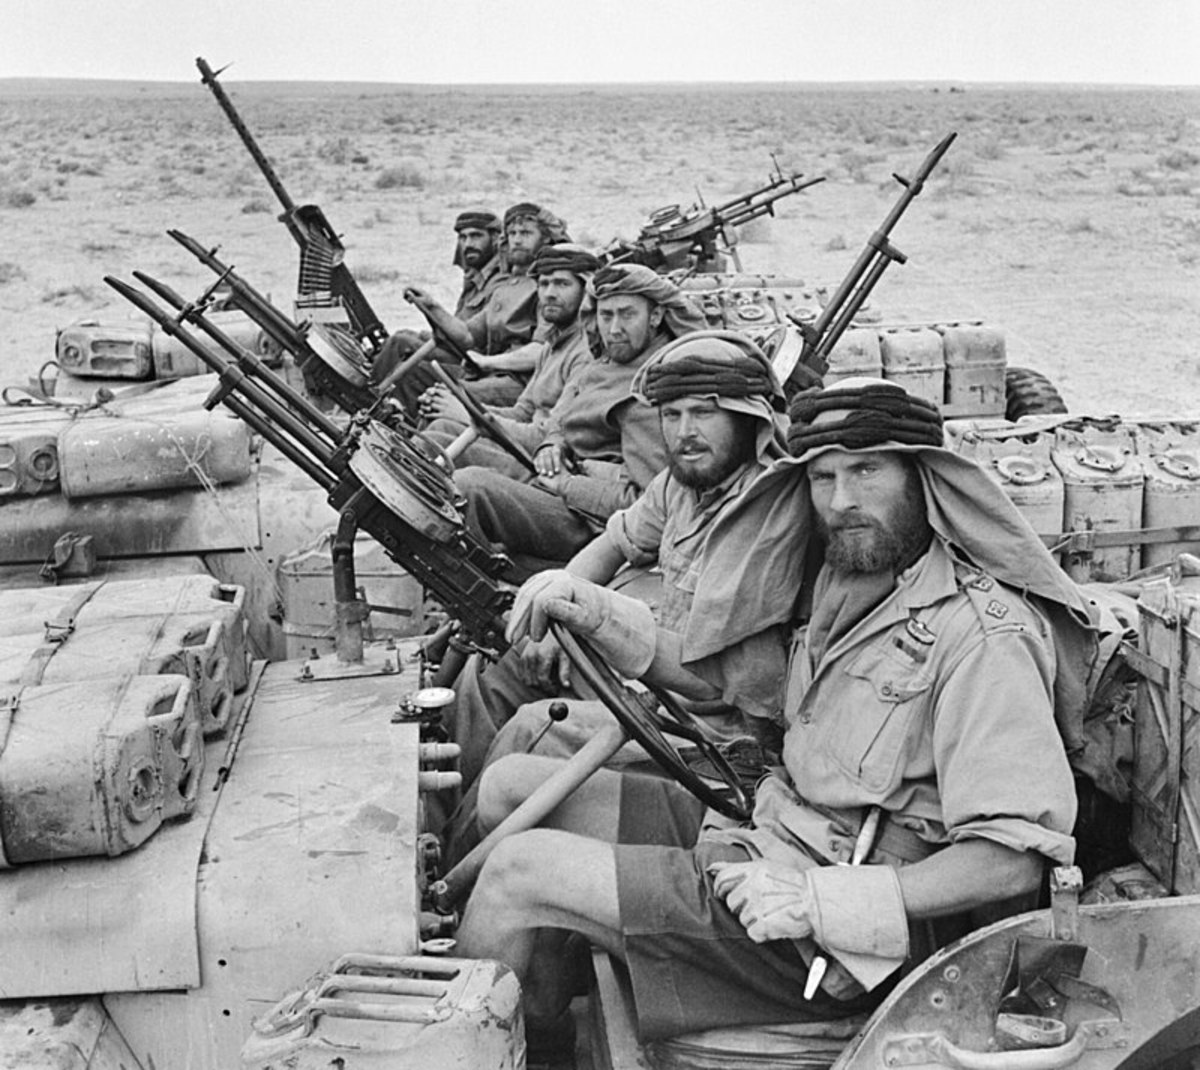 This is how they looked in WW2 when they harassed the Germans in North Africa. And about as far away from a British Military look as you can get.